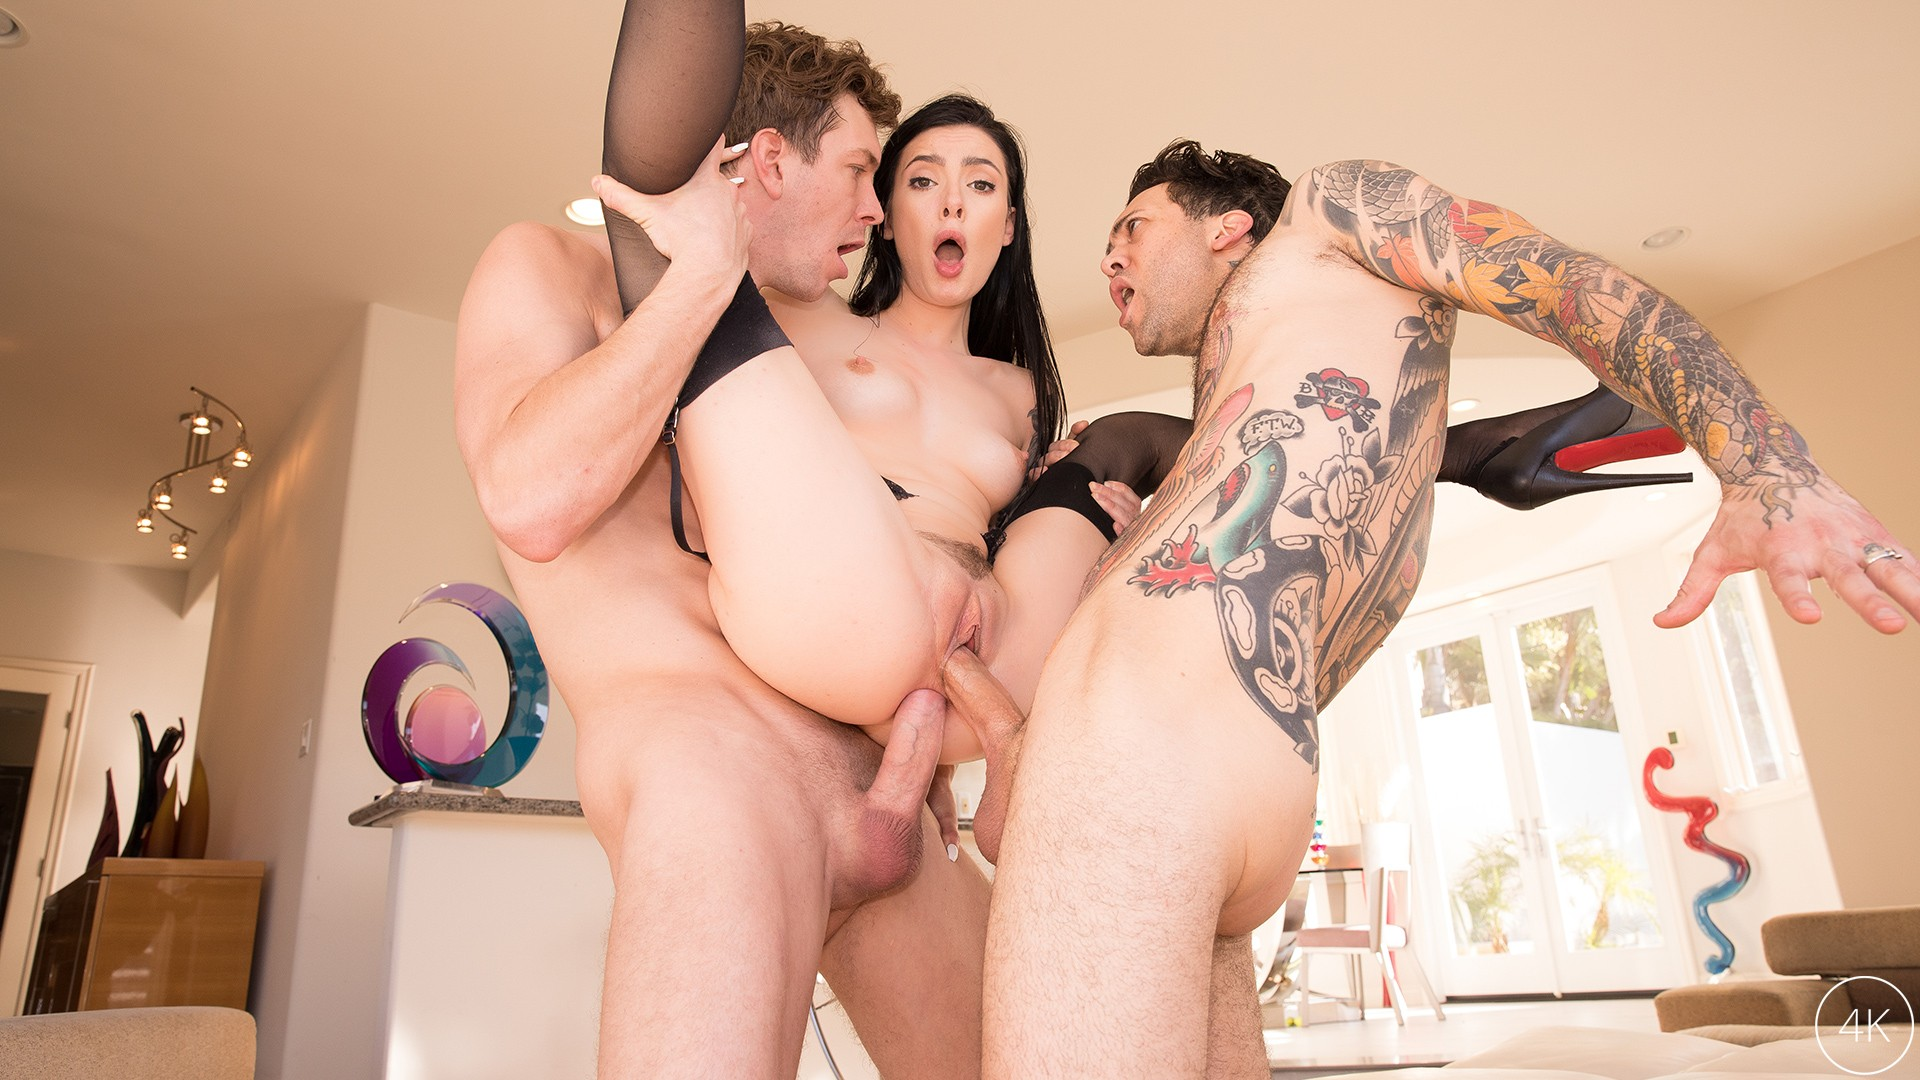 Marley Brinx Receives An Intense